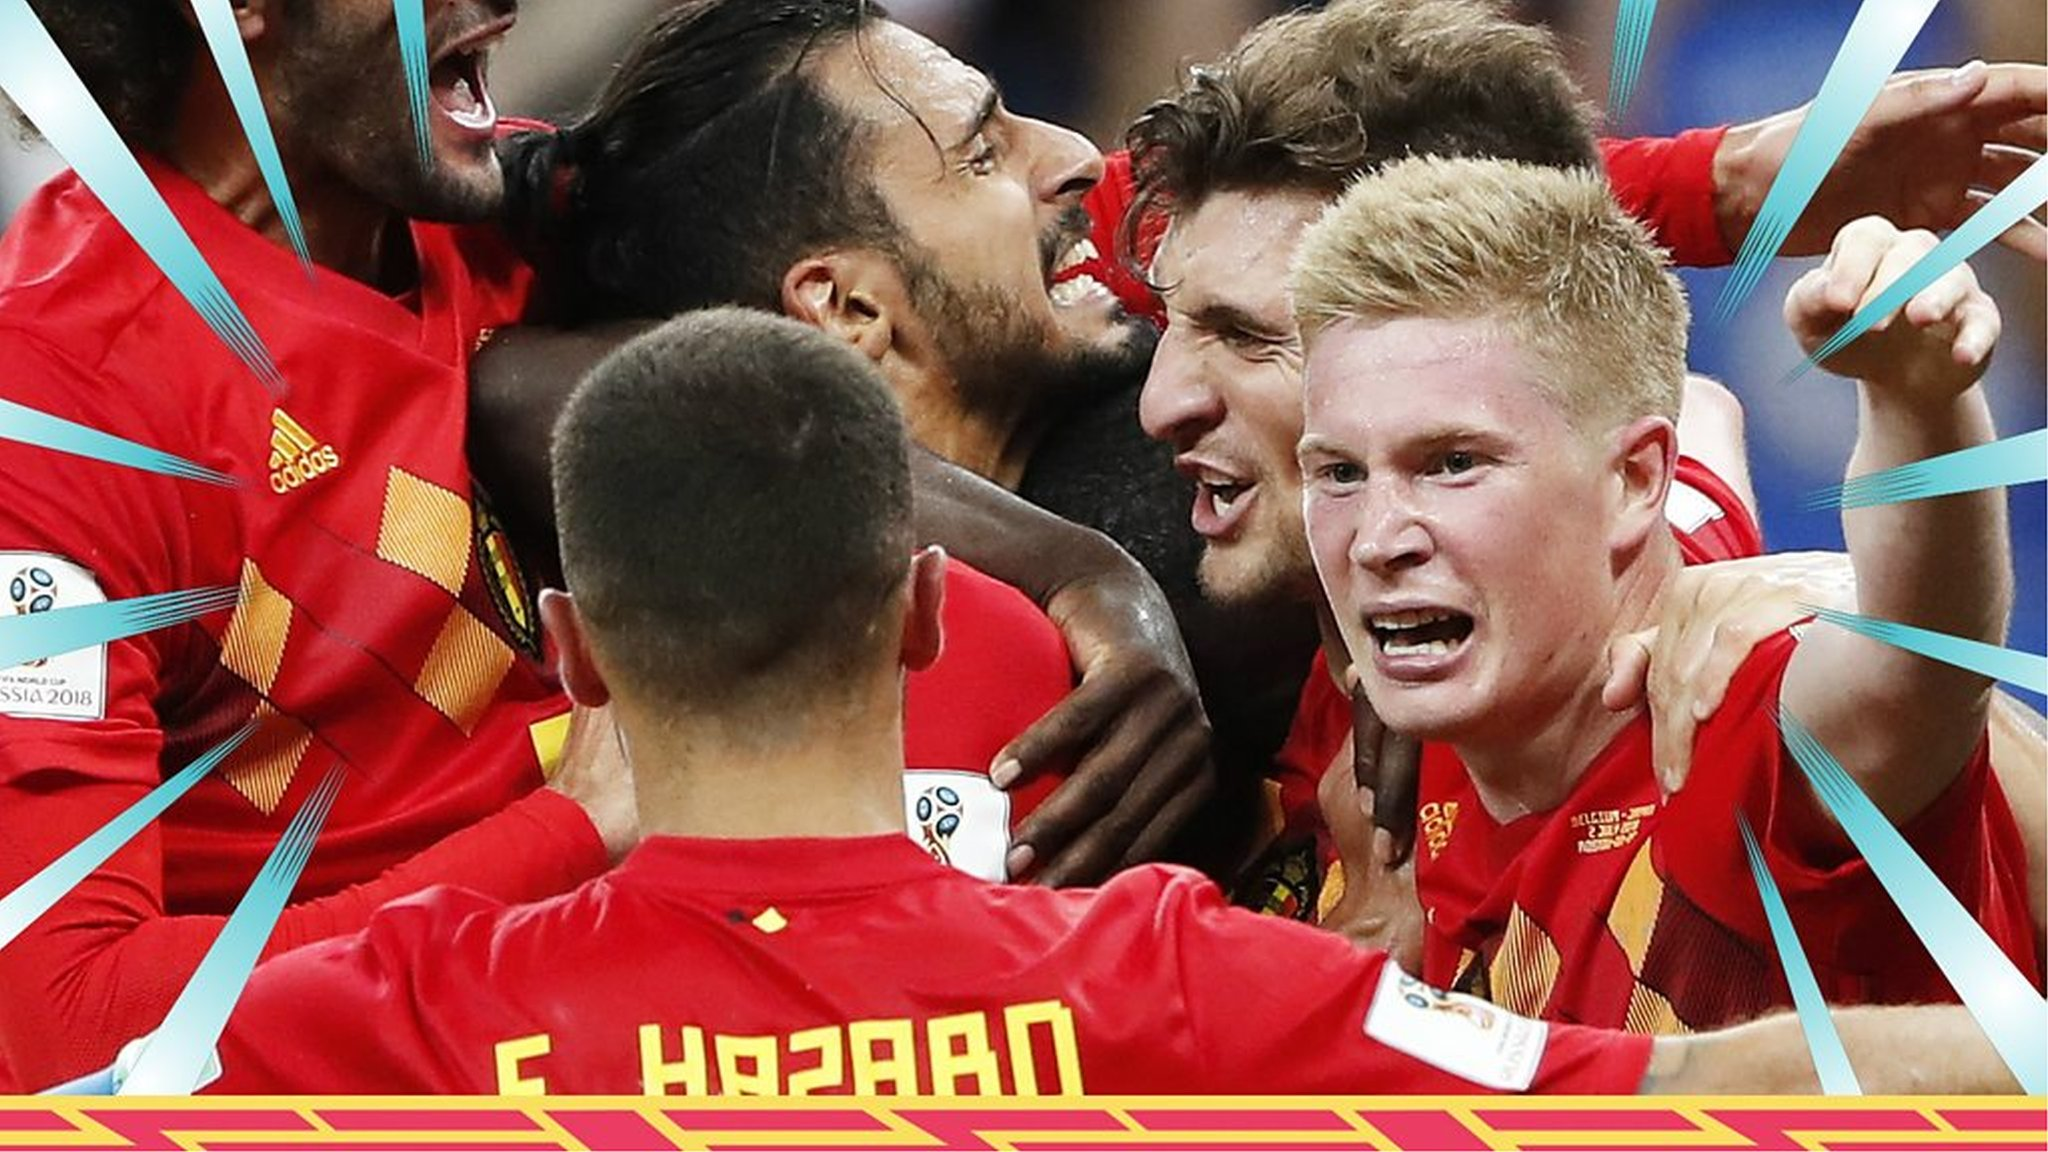 World Cup 2018: Belgium 3-2 Japan highlights